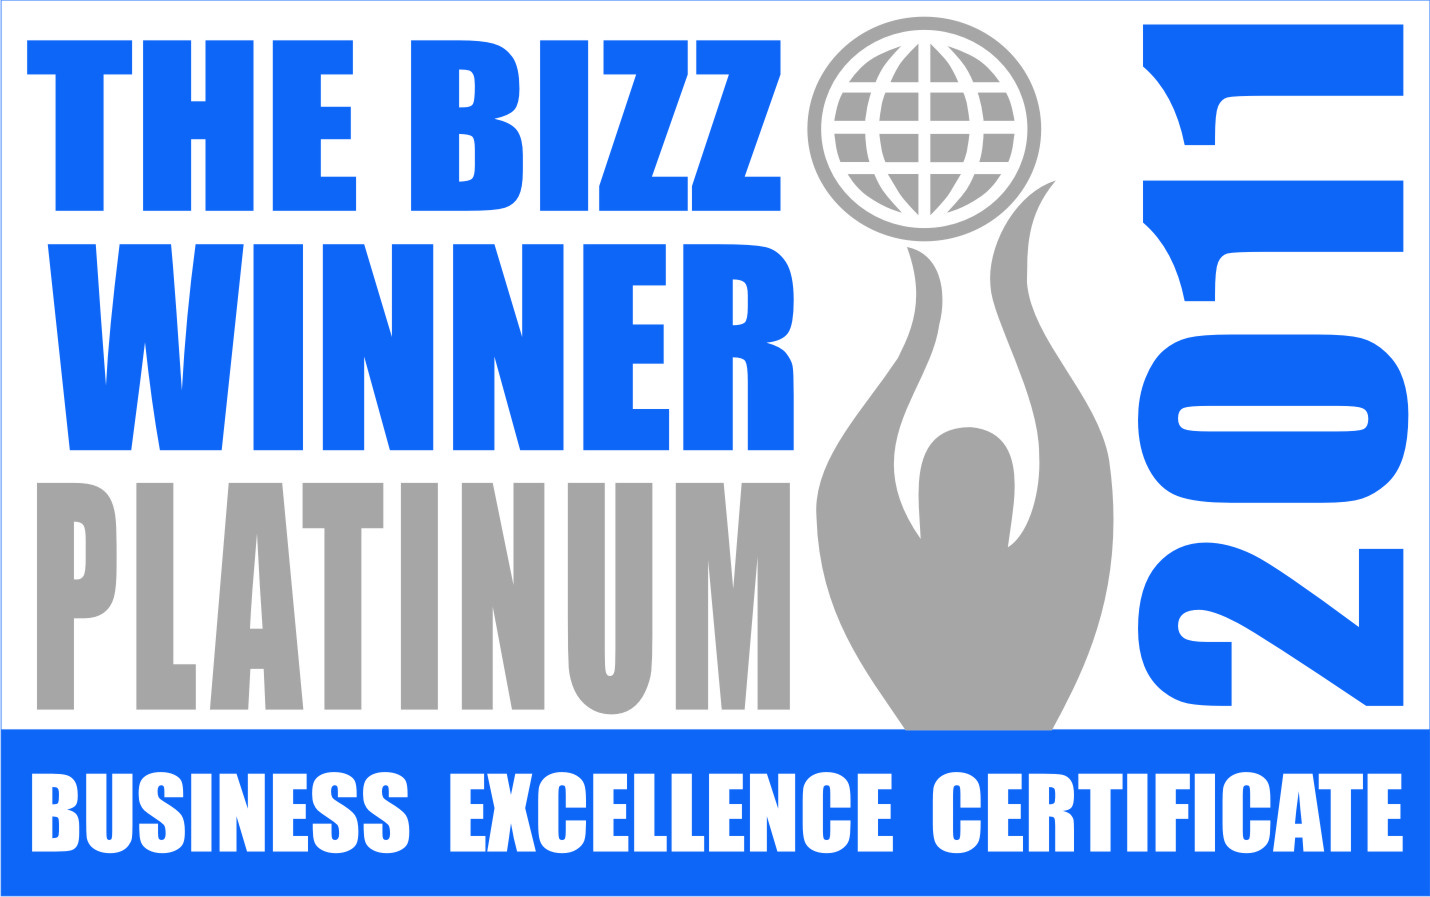 5_THE-BIZZ-WINNER-2011_PLATINUM